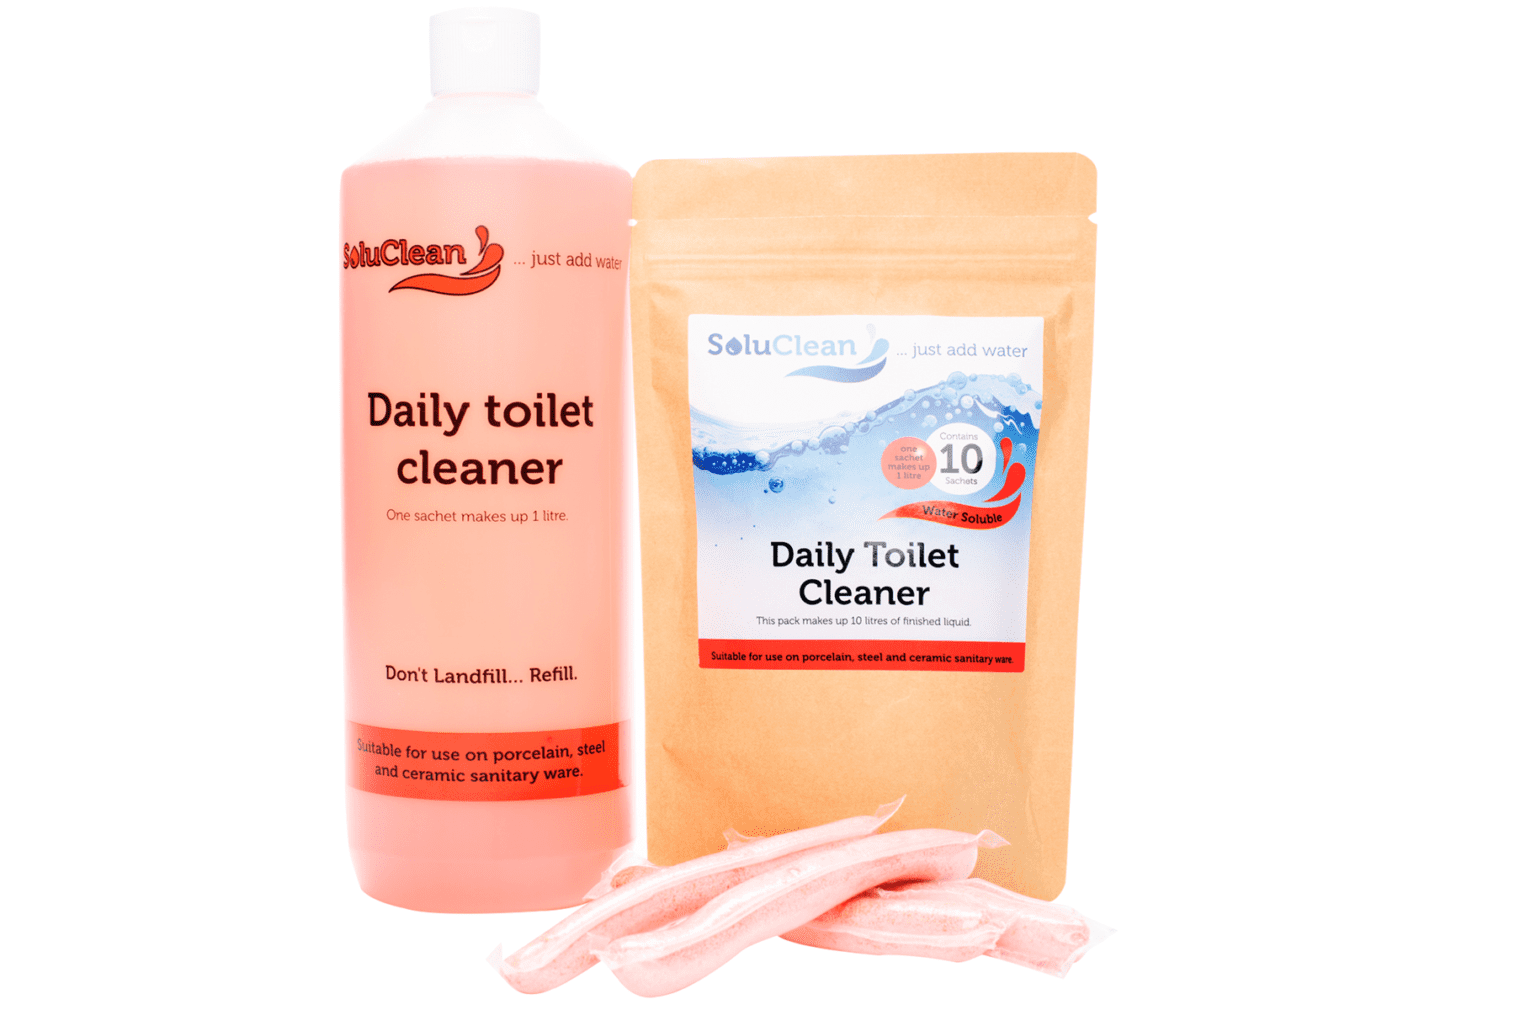 Daily-toilet-cleaner